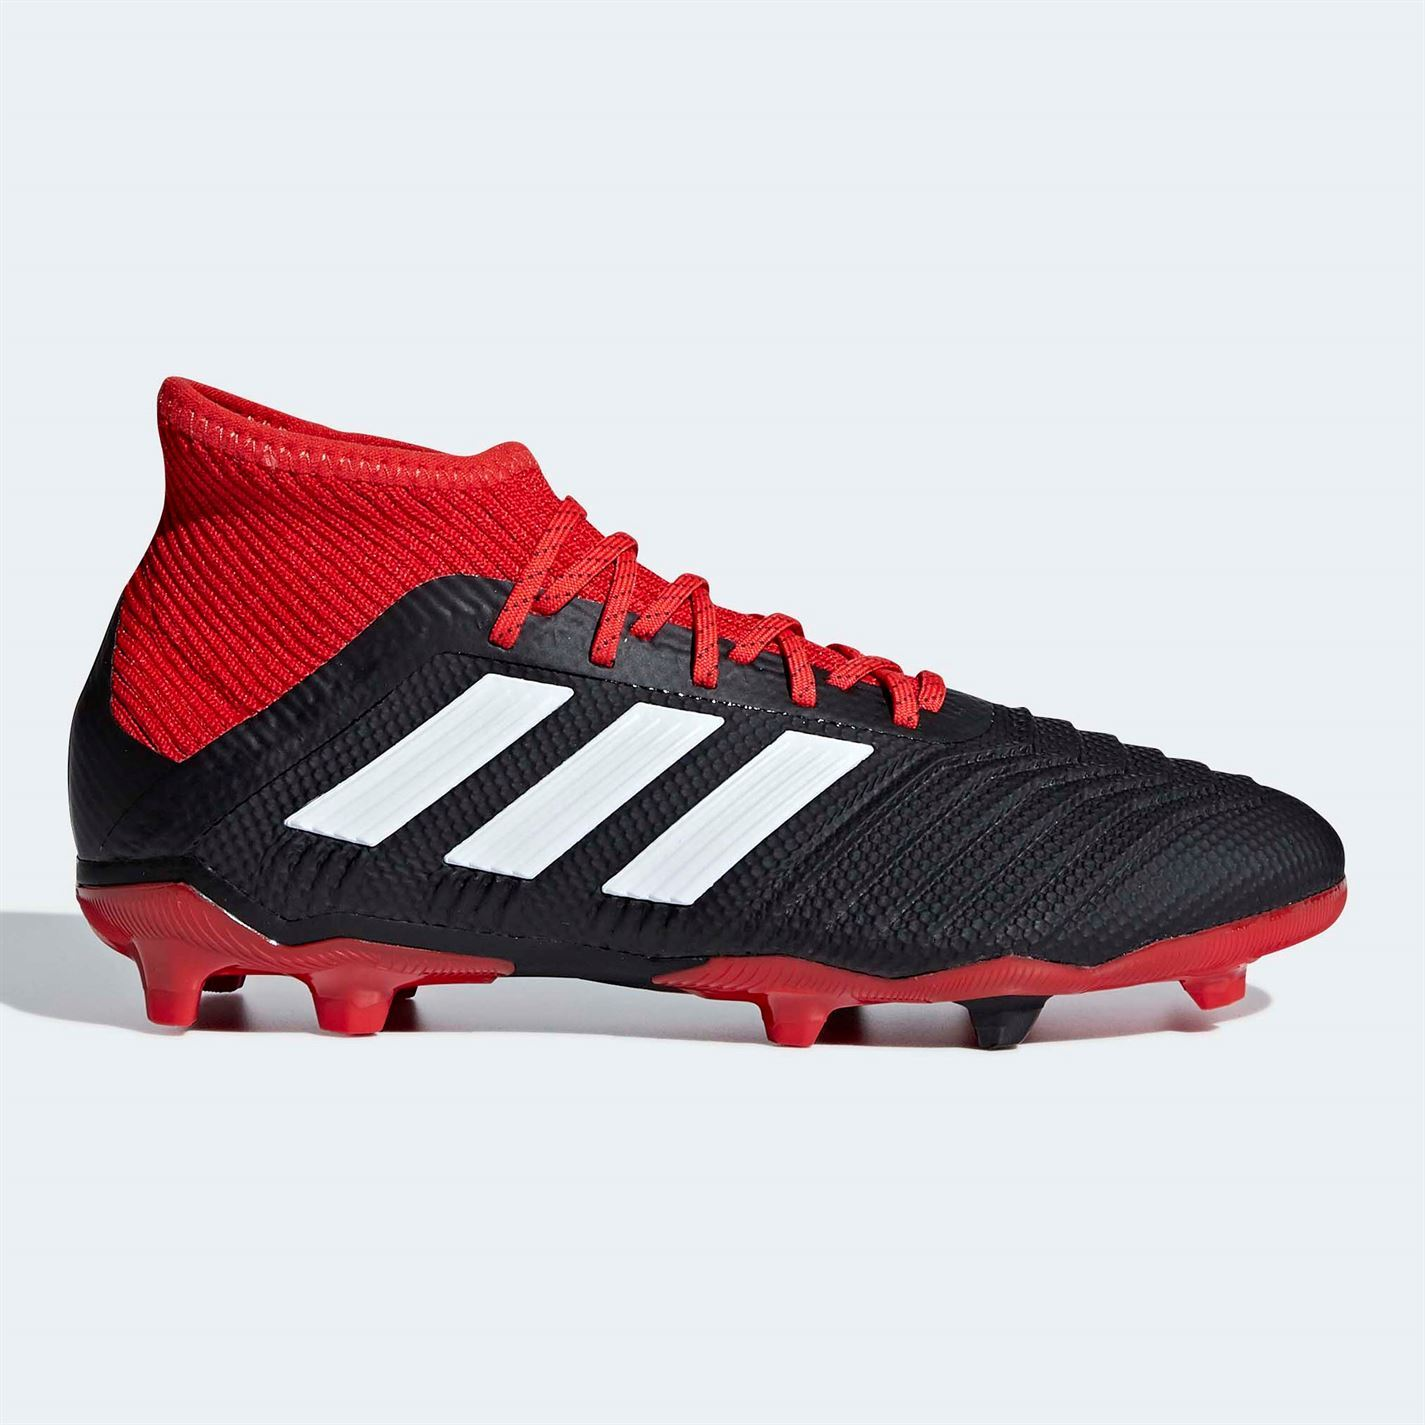 promo code 6e2bd ada0b ... adidas Predator 18.1 FG Firm Ground Football Boots Childs Soccer Shoes  Cleats